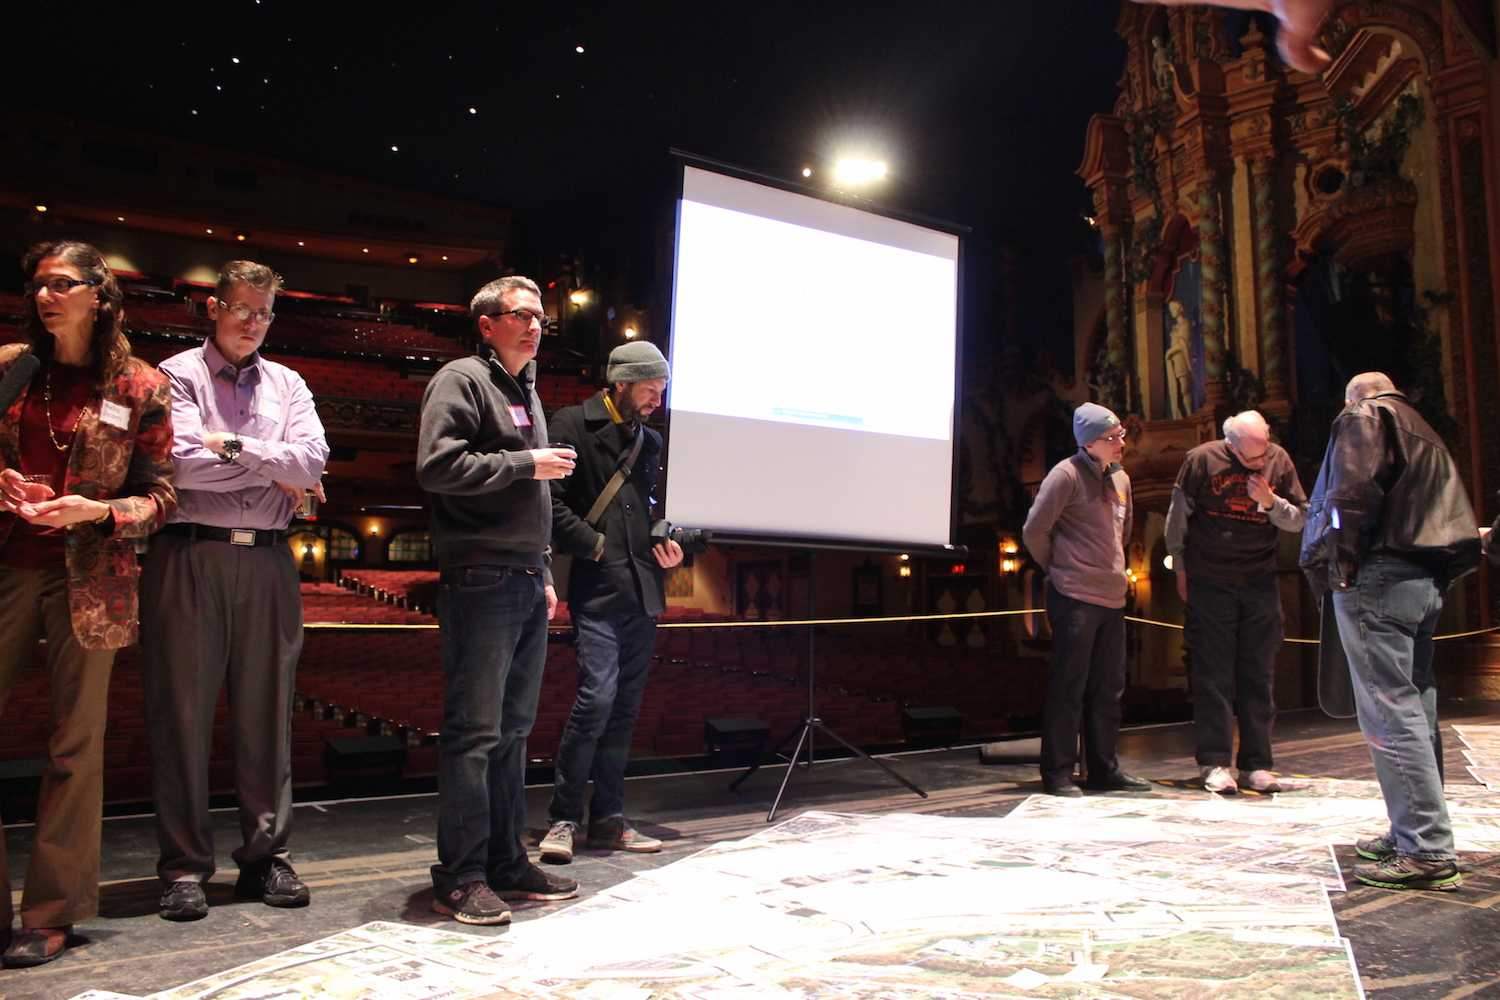 Akron residents gathered at Akron Civic Theater to give their input on the iTowpath project on Thursday, March 5.